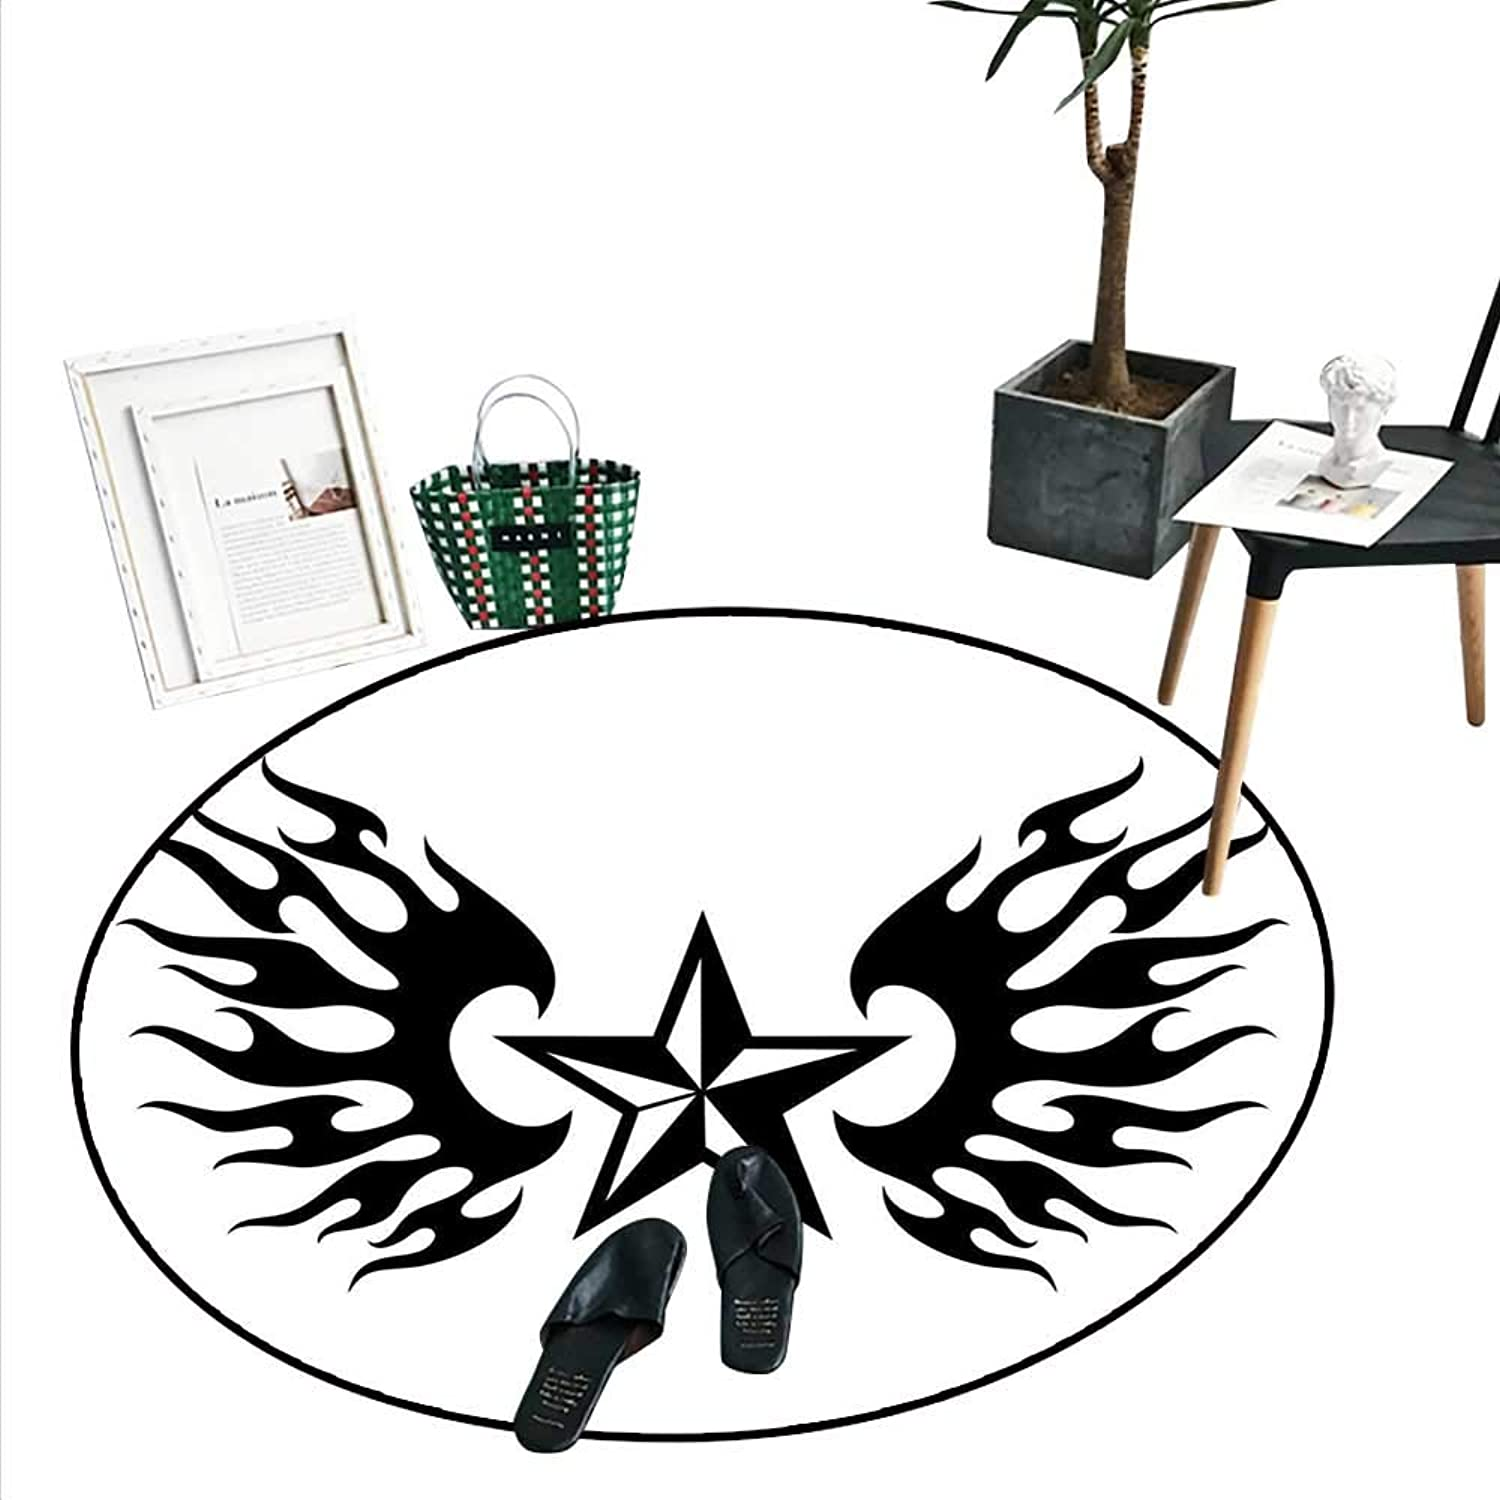 Texas Star Dining Room Home Bedroom Carpet Floor Mat United States of America Themed Star and Flames Silhouette Abstract Design Soft Area Rugs (4'2  Diameter) Black and White